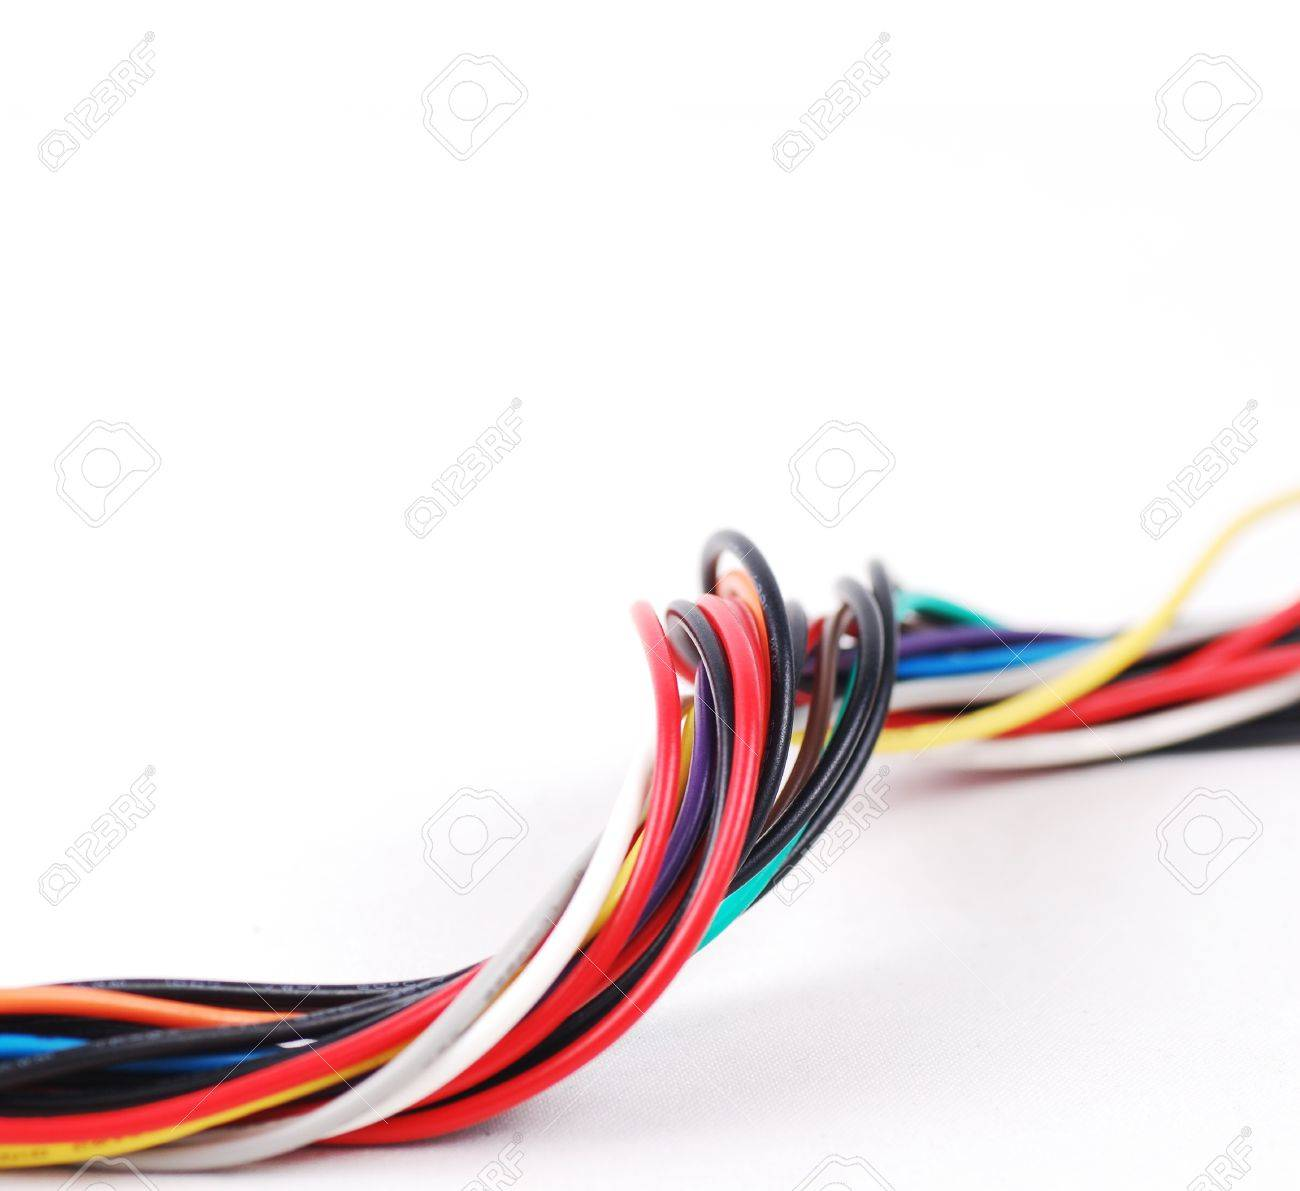 Electric Wires Isolated On White Background Stock Photo, Picture And ...